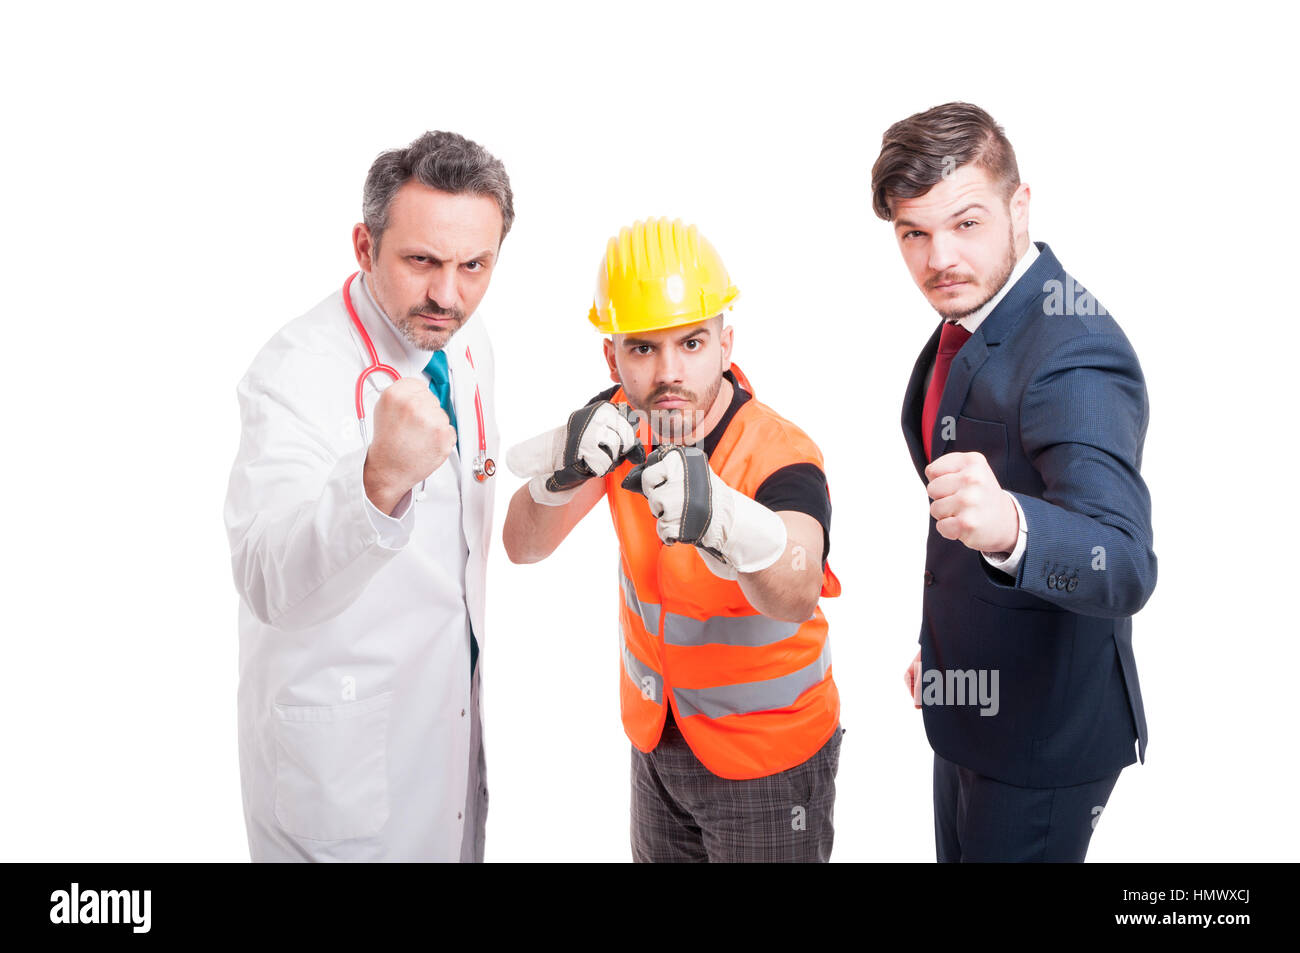 Furious group of men being prepared for battle or figh and doing punch gesture isolated on white - Stock Image